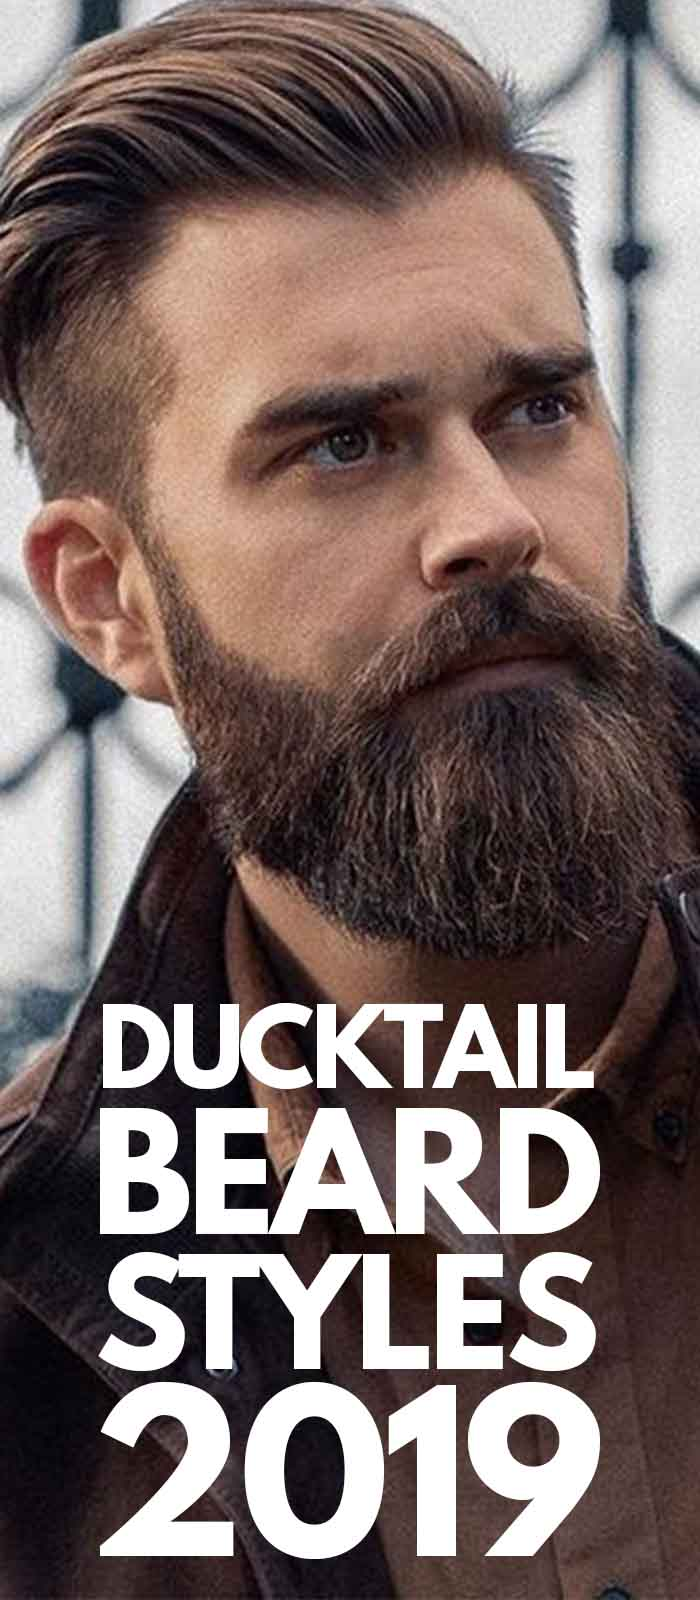 Brown Jacket Ducktail Beard!